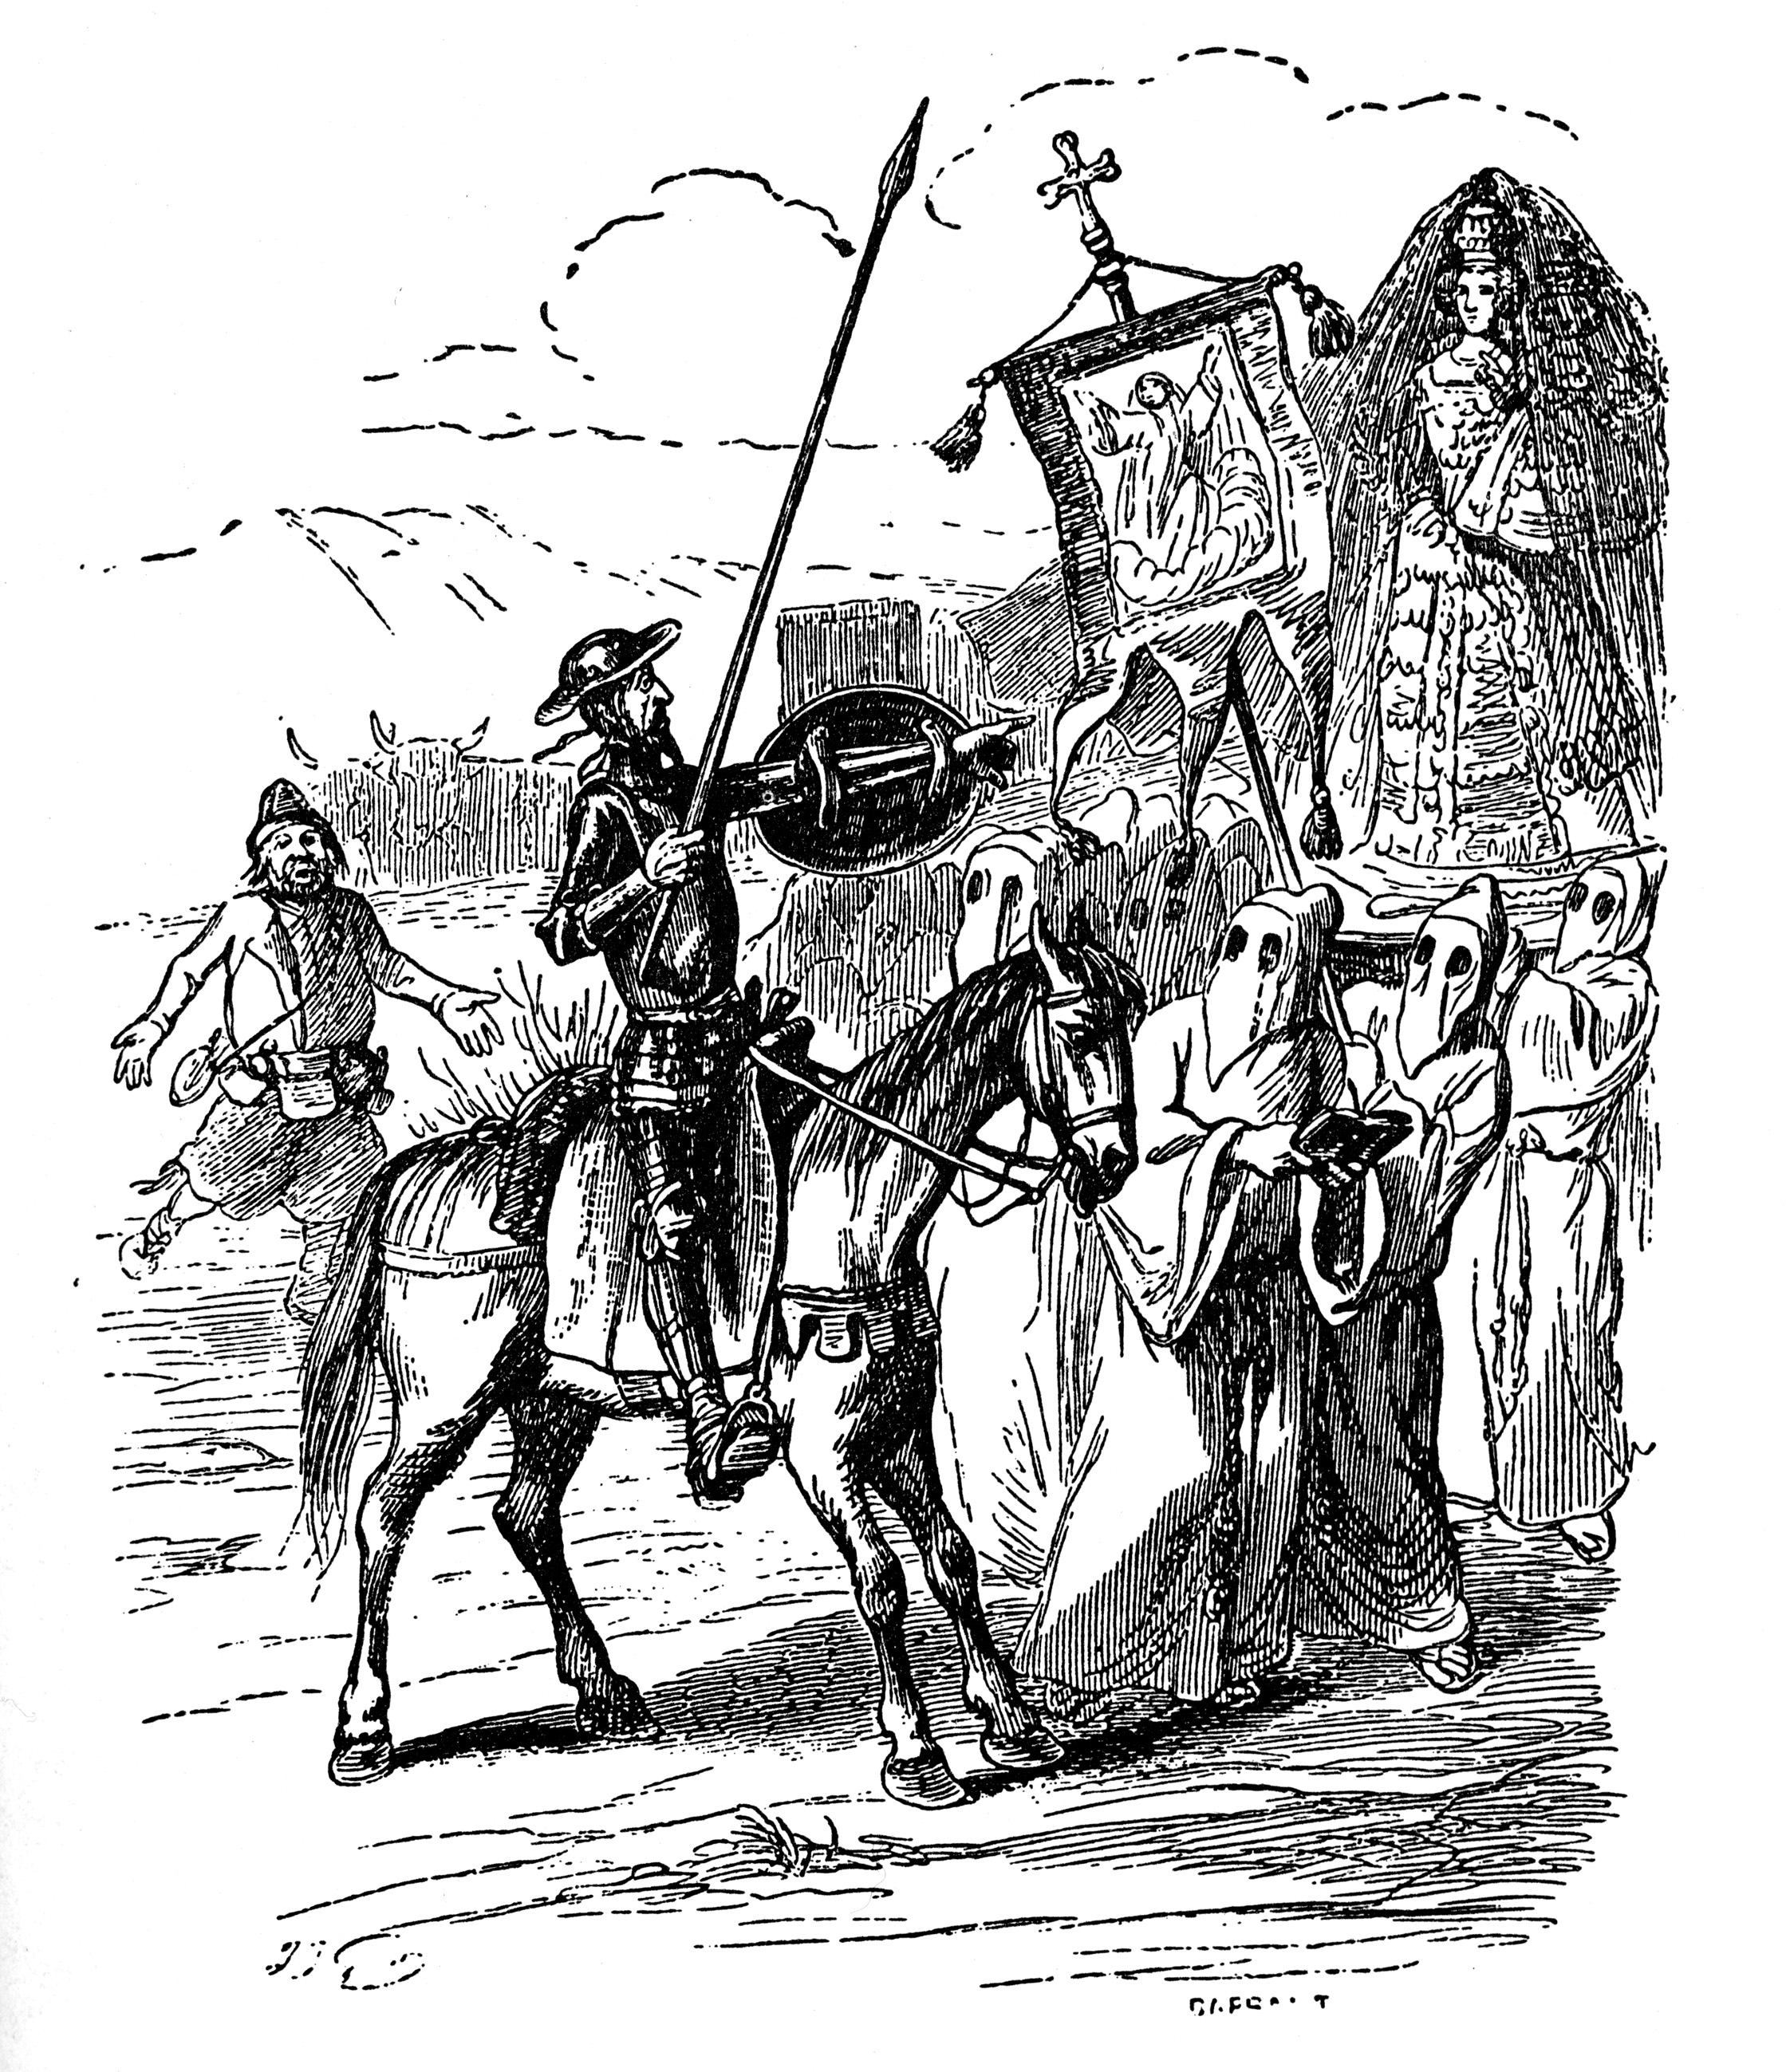 https://i0.wp.com/upload.wikimedia.org/wikipedia/commons/3/3a/Quijote-2.jpg